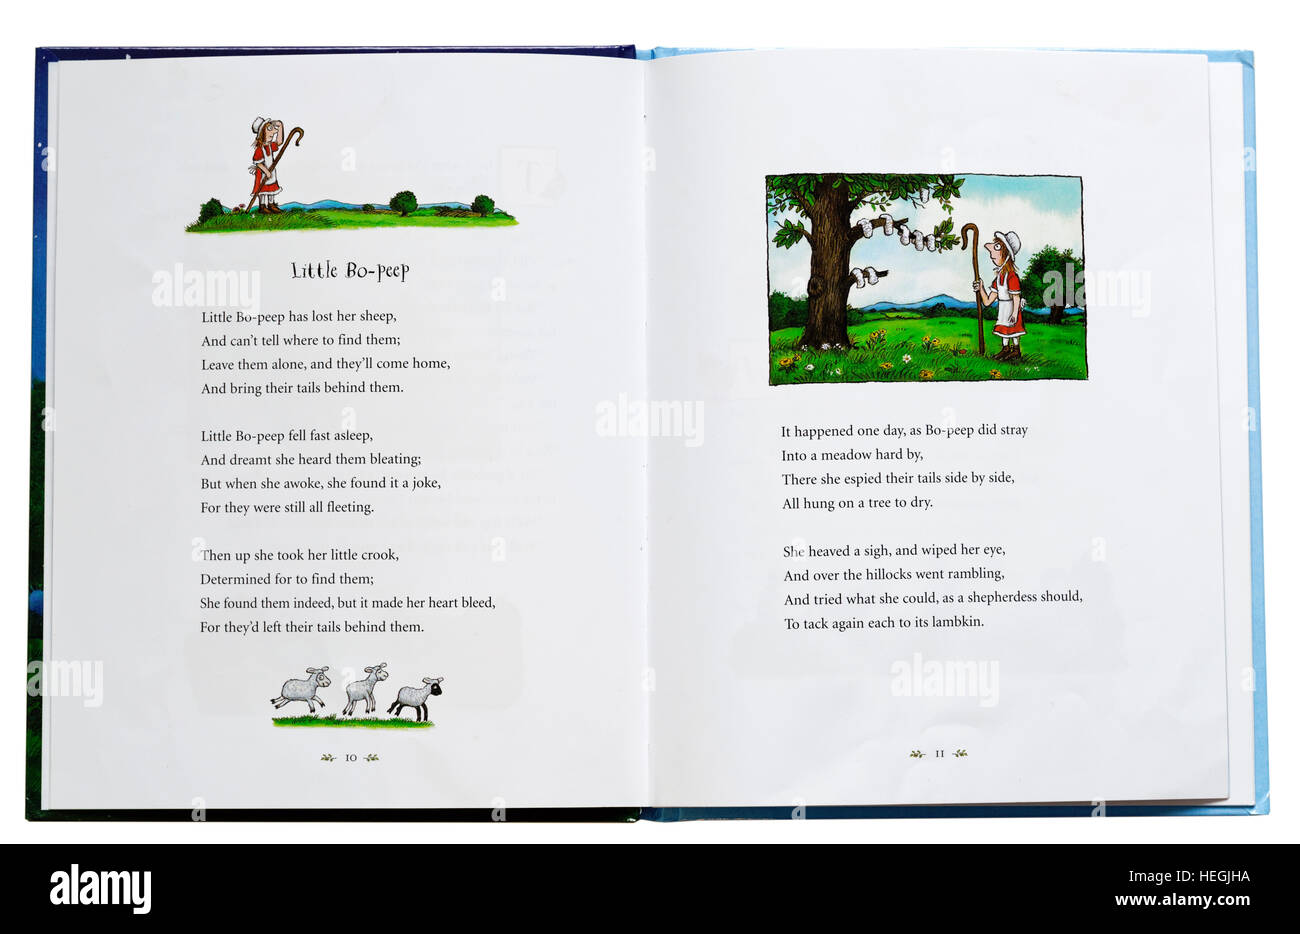 Little Bo Peep nursery rhyme in a book - Stock Image